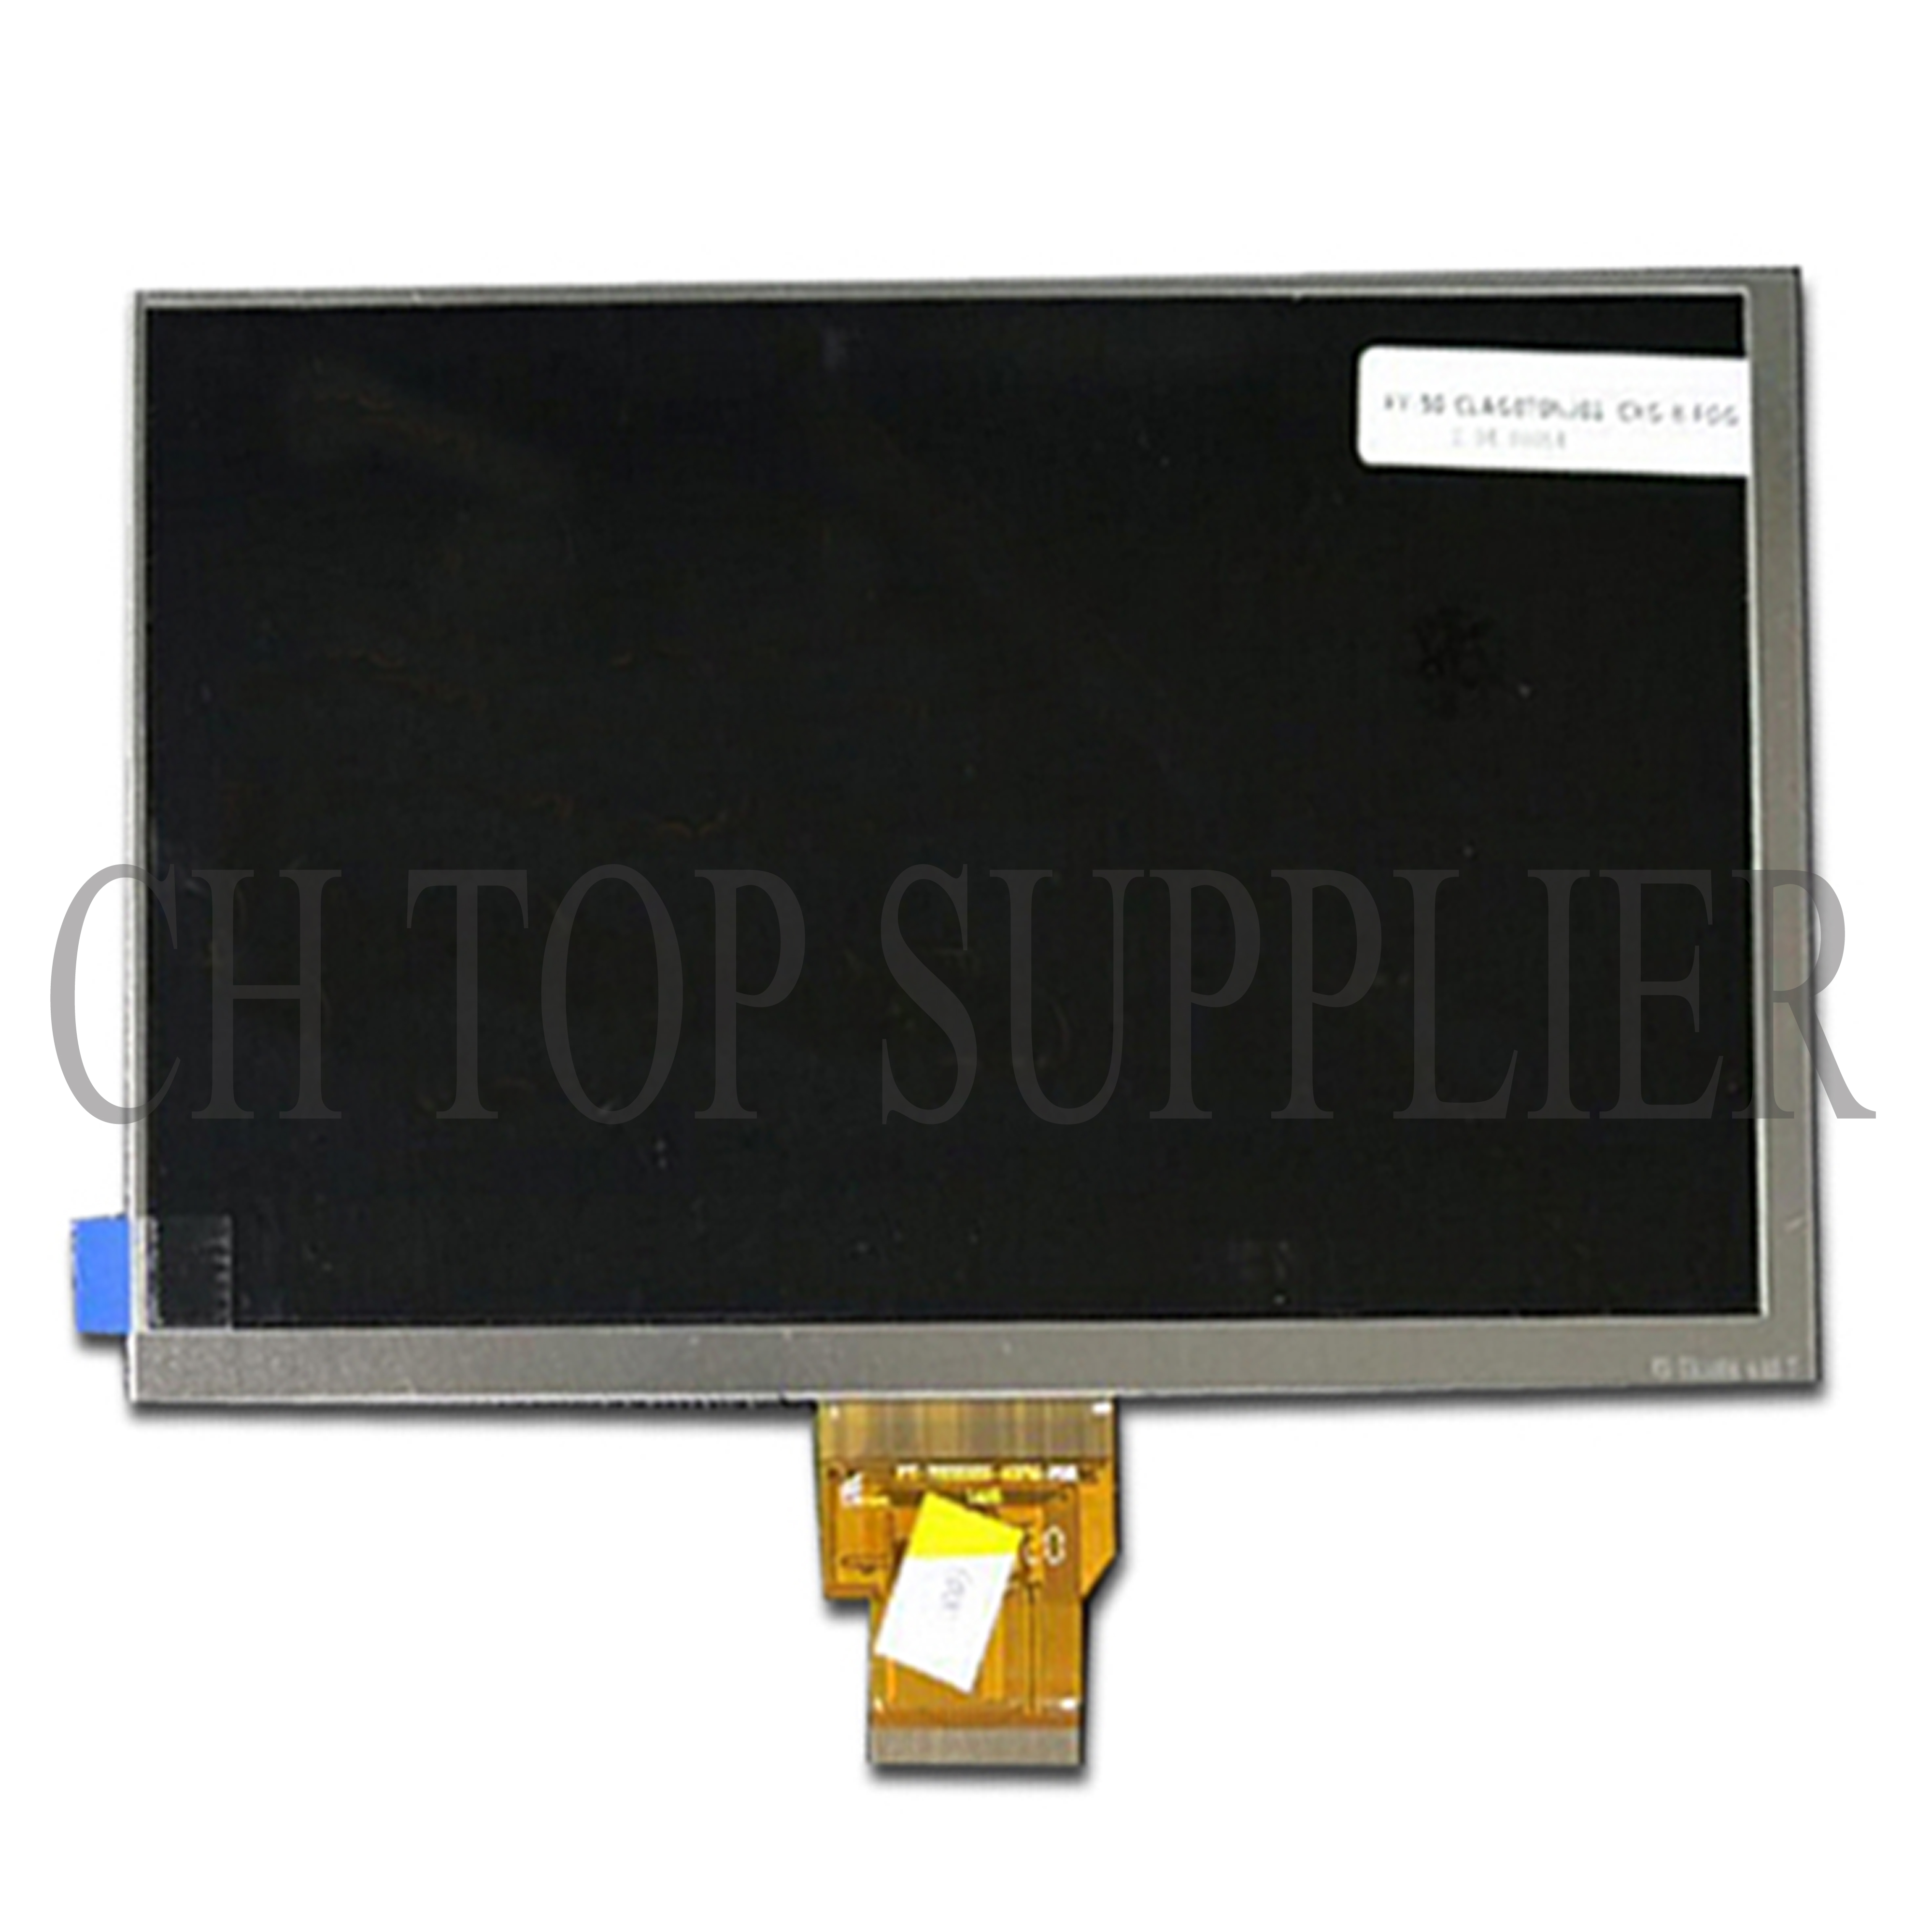 New LCD Display FY07024DI26A116-1-FPC1-B For 7.0 inch Tablet IPS inner LCD screen Matrix panel Glass Module Free Shipping interior lcd display glass panel screen fpc lx57hx010n a for china clone mtk android phone n9000 n9002 n9006